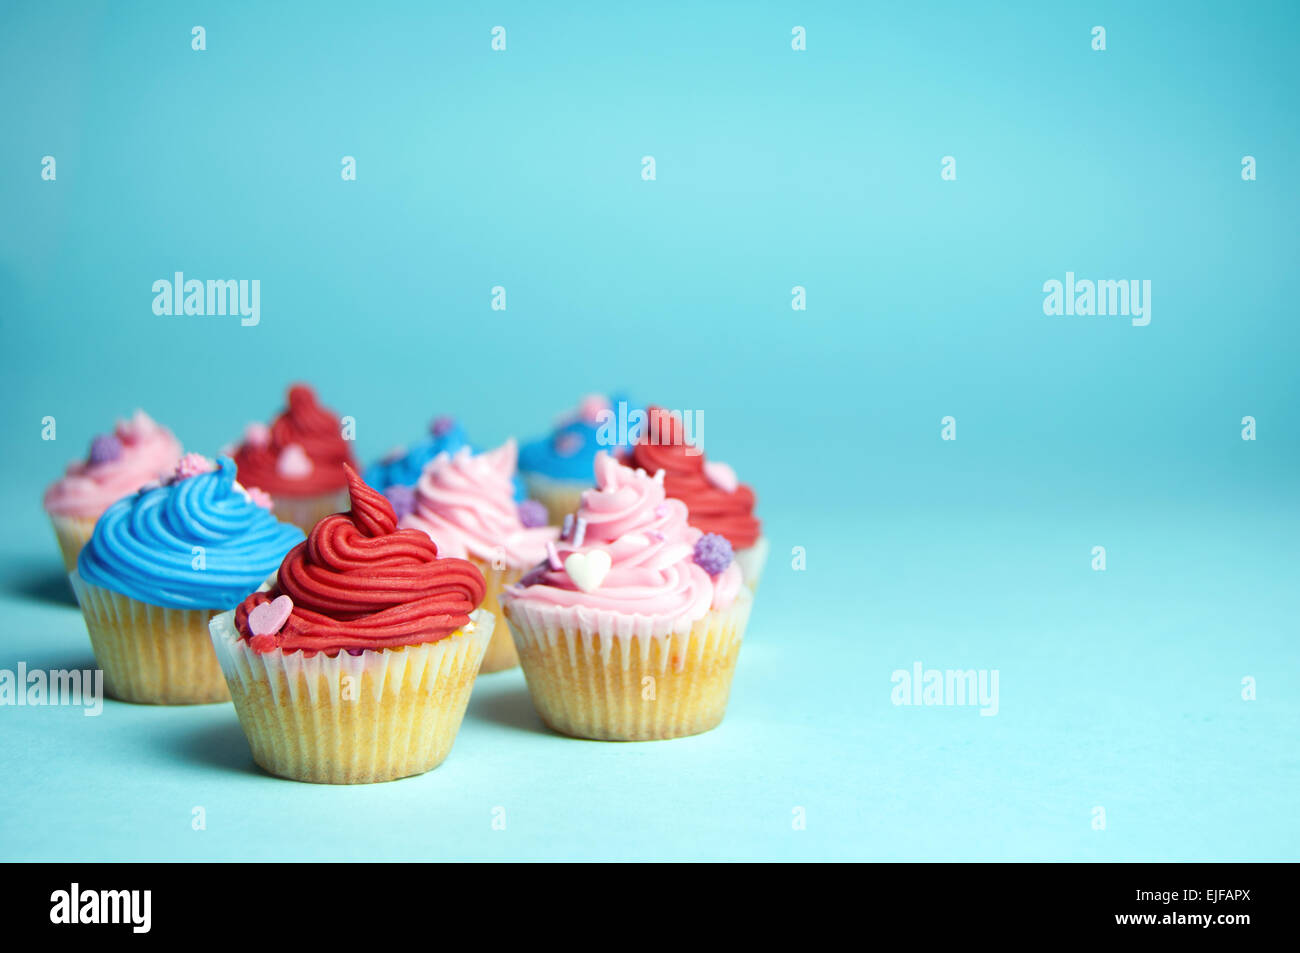 Assorted cream cupcakes with copyspace - Stock Image